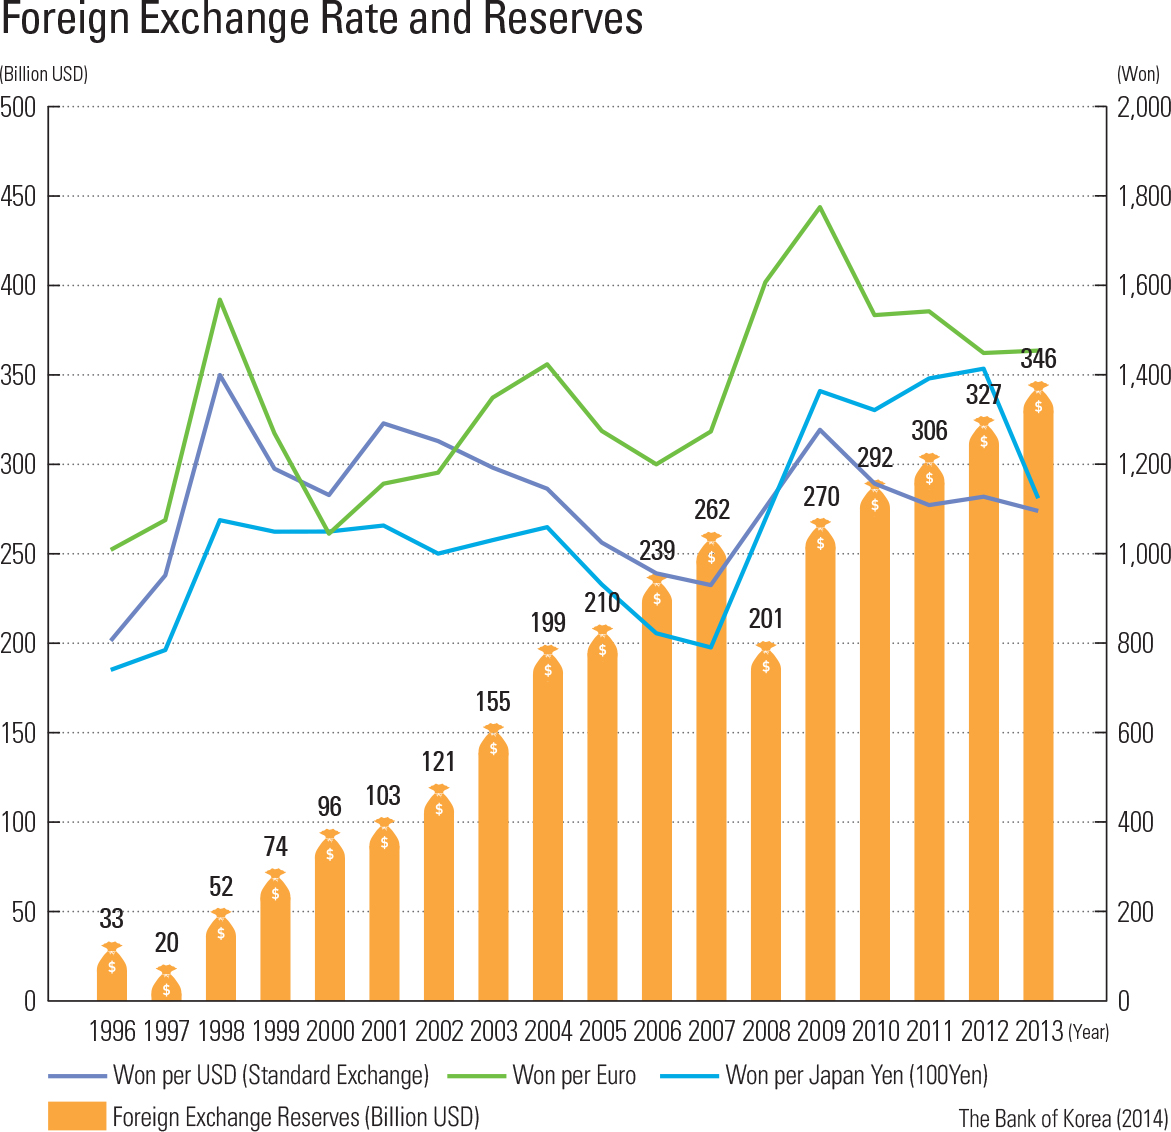 Foreign Exchange Rate and Reserves